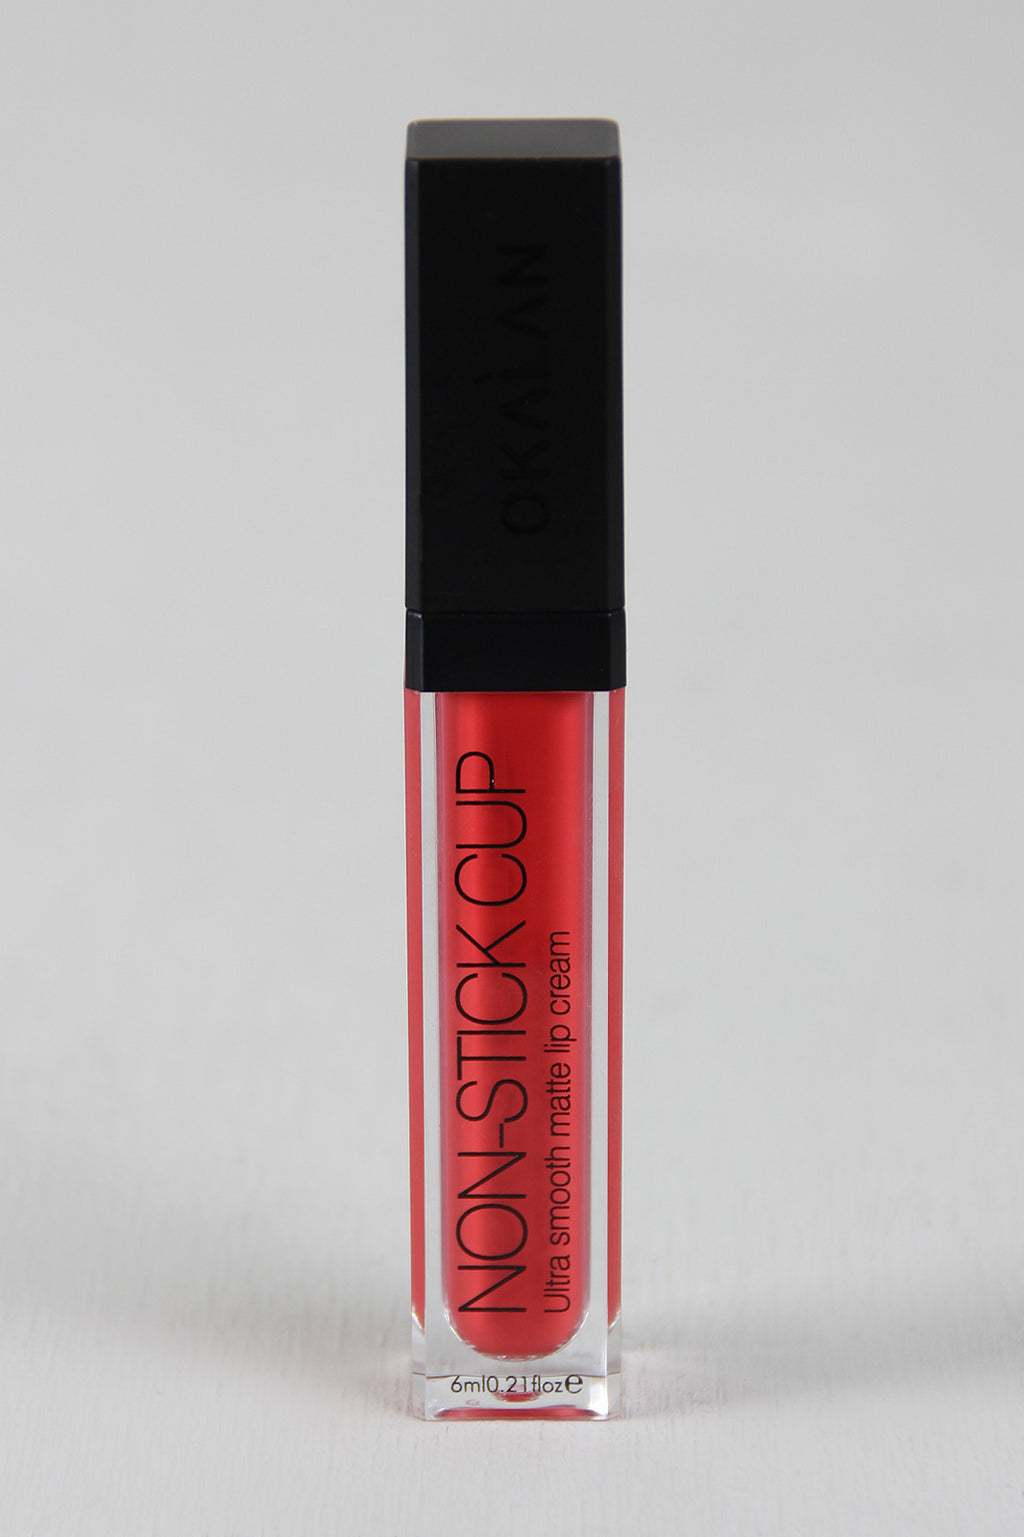 Okalan Ultra Smooth Matte Lip Cream